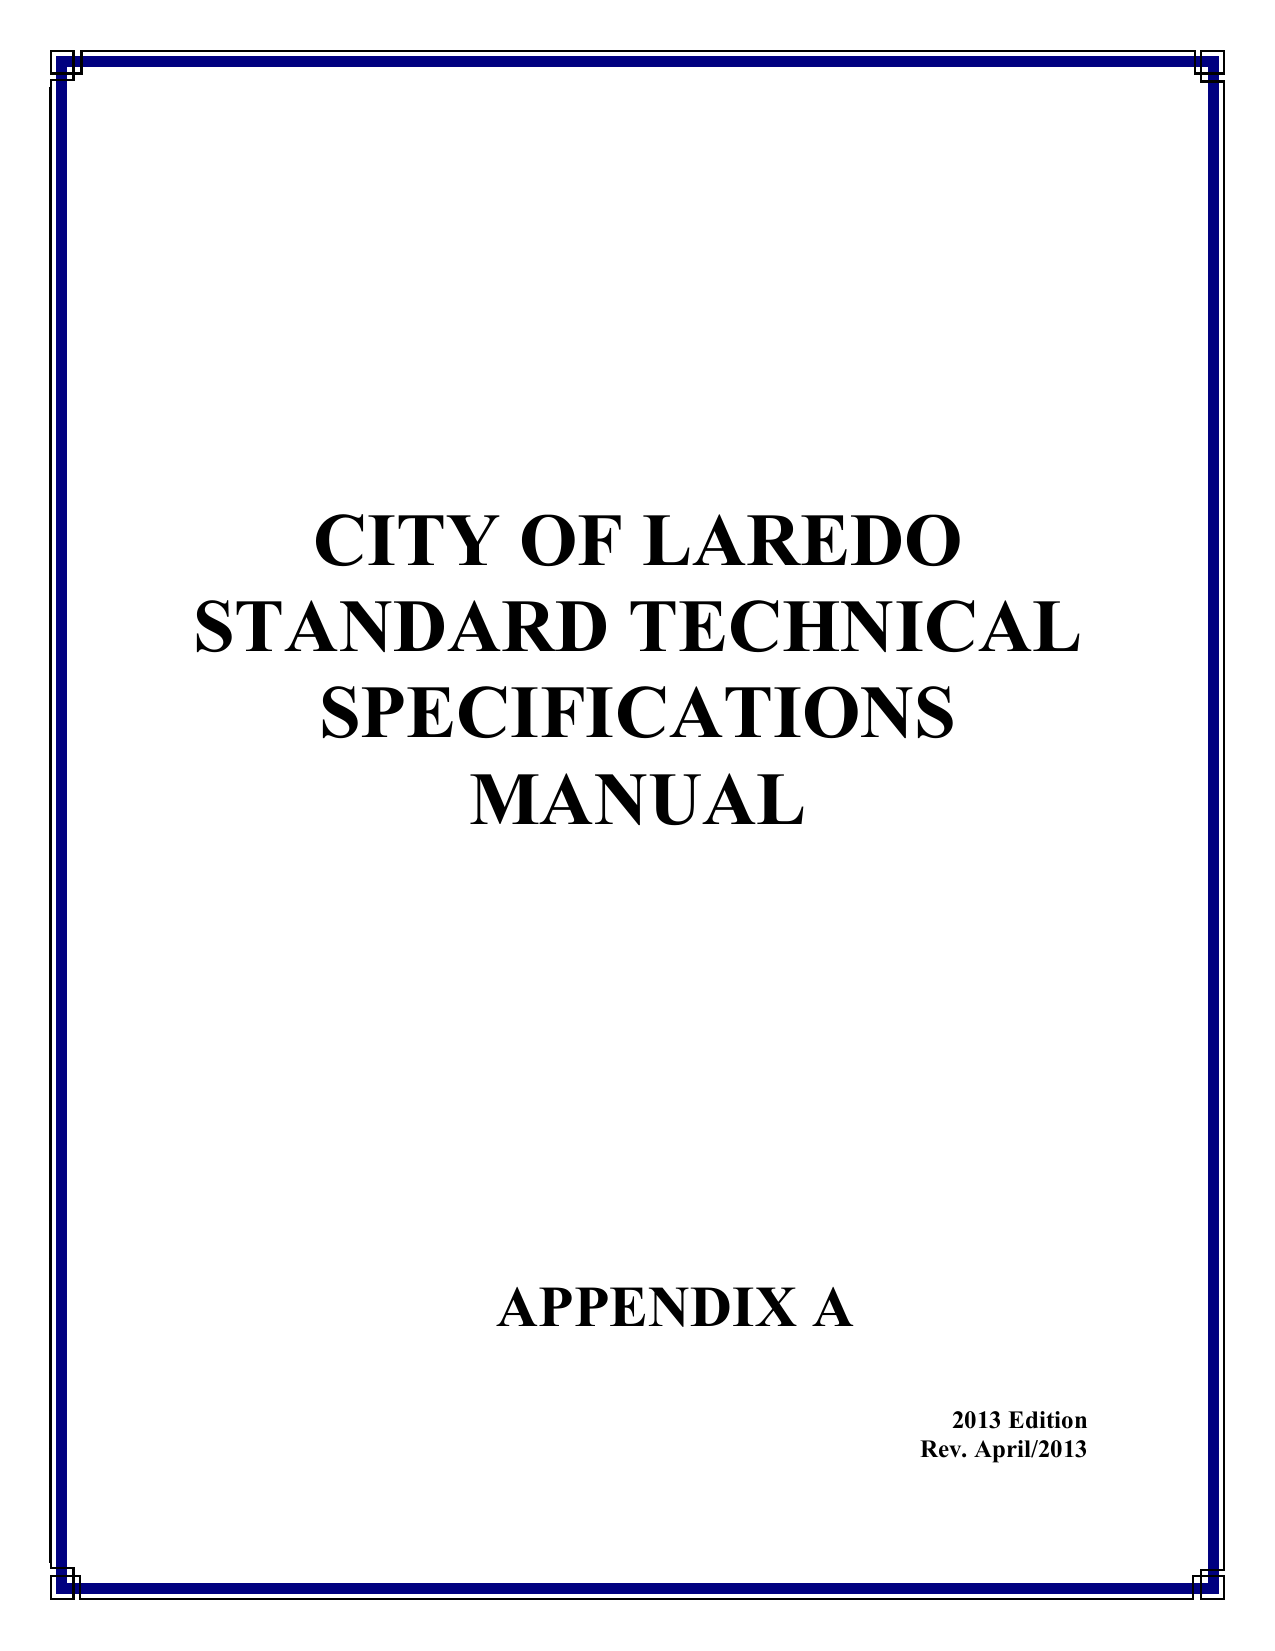 pdf for NHT Other PVC-Pro Volume Controllers manual